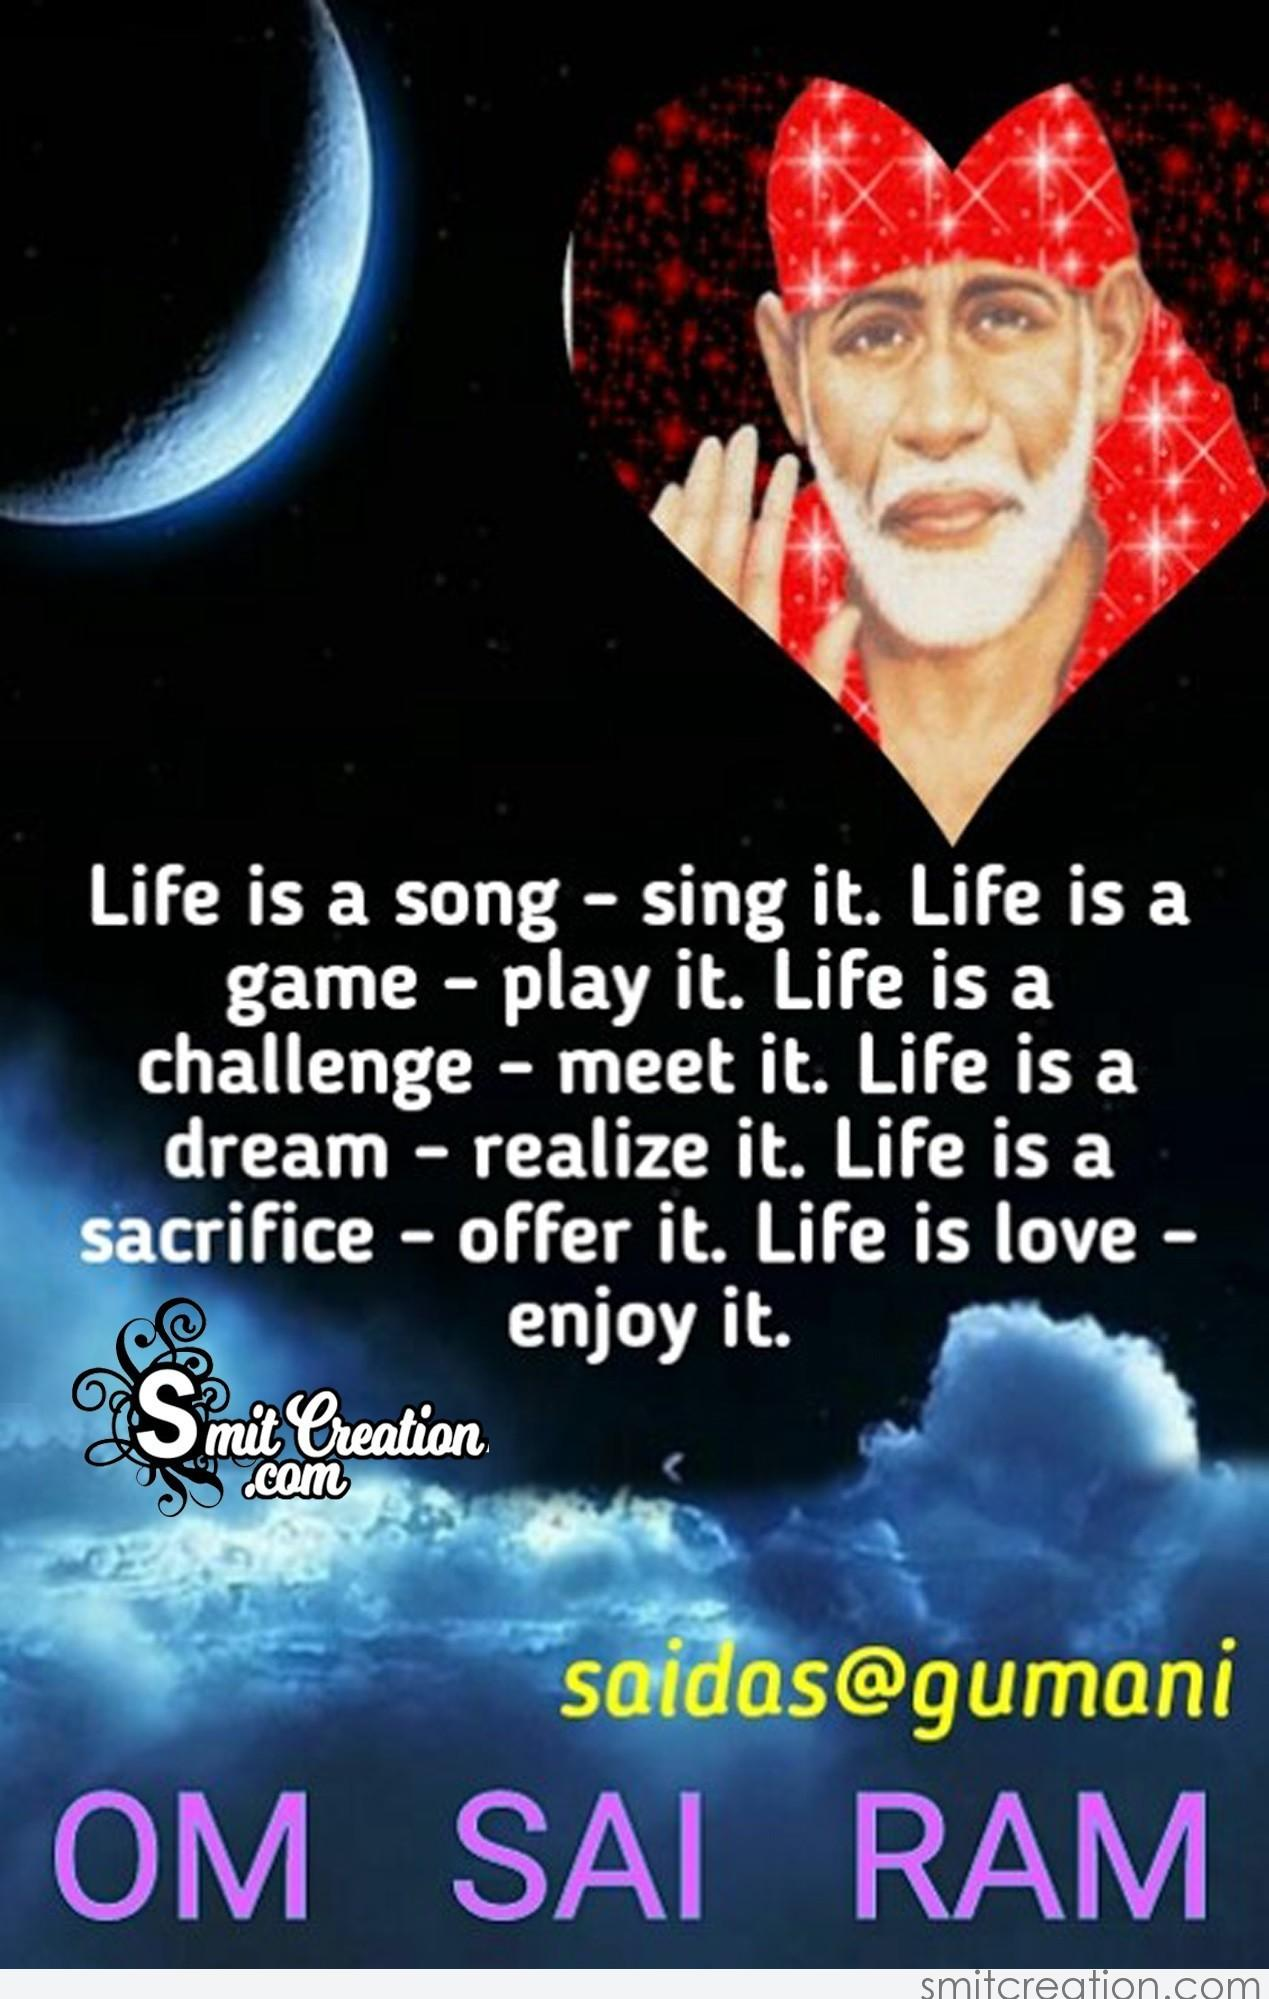 Sai Baba Quotes Pictures and Graphics - SmitCreation.com